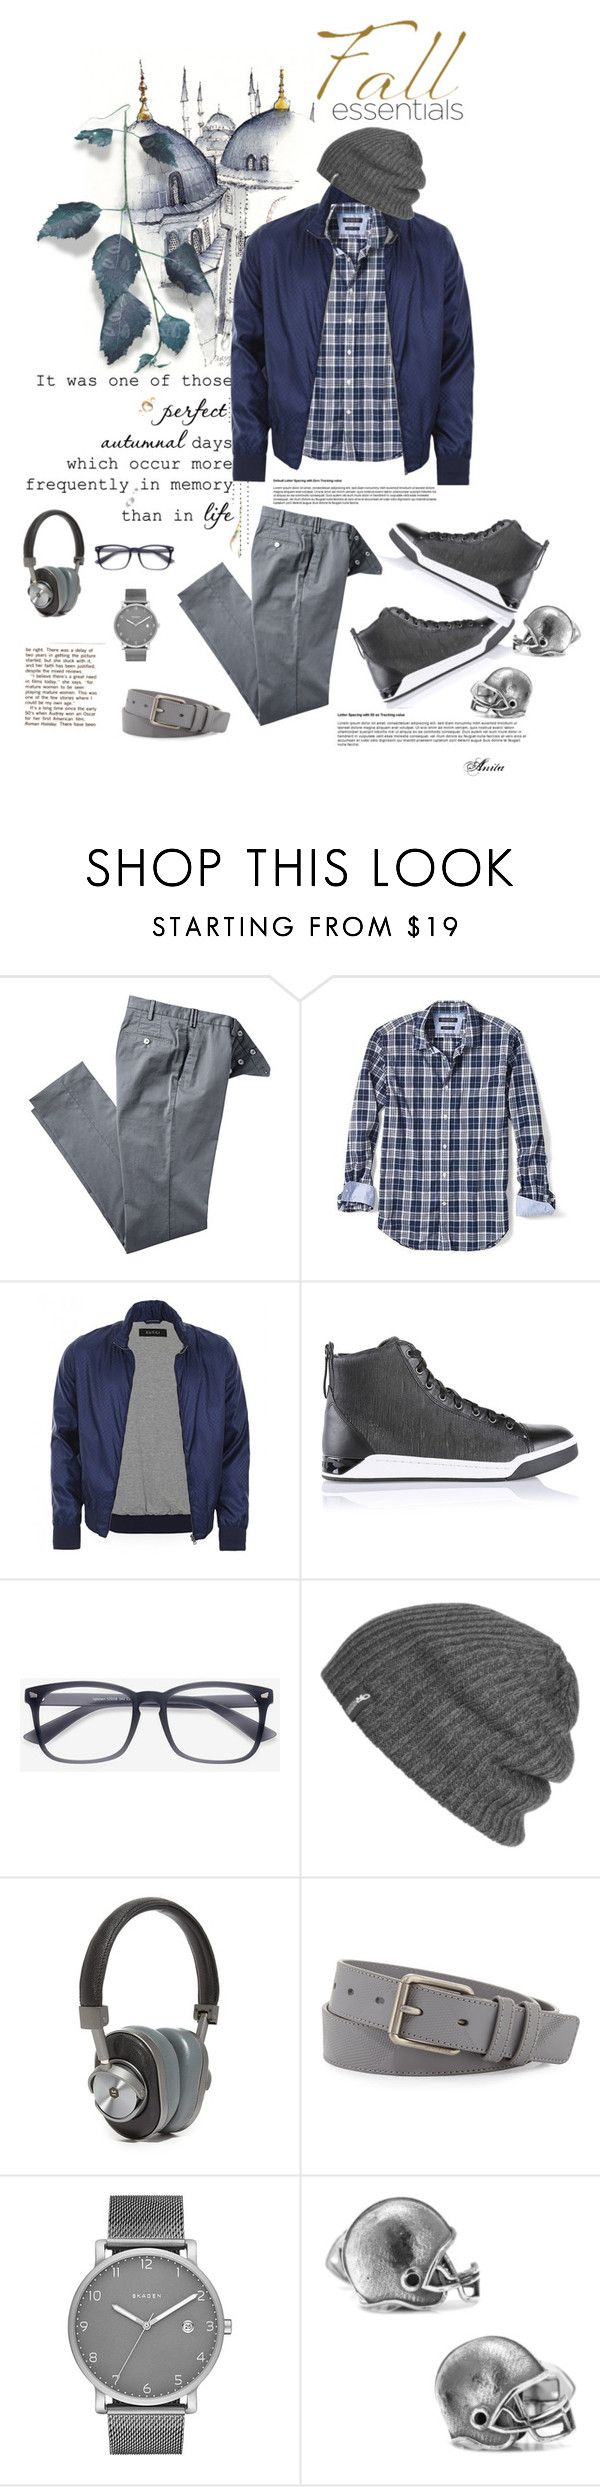 """Fall Essential for Men in Gray"" by wodecai ❤ liked on Polyvore featuring Banana Republic, Gucci, Diesel, Outdoor Research, Master & Dynamic, Burberry, Skagen, Cufflinks, Inc., men's fashion and menswear"